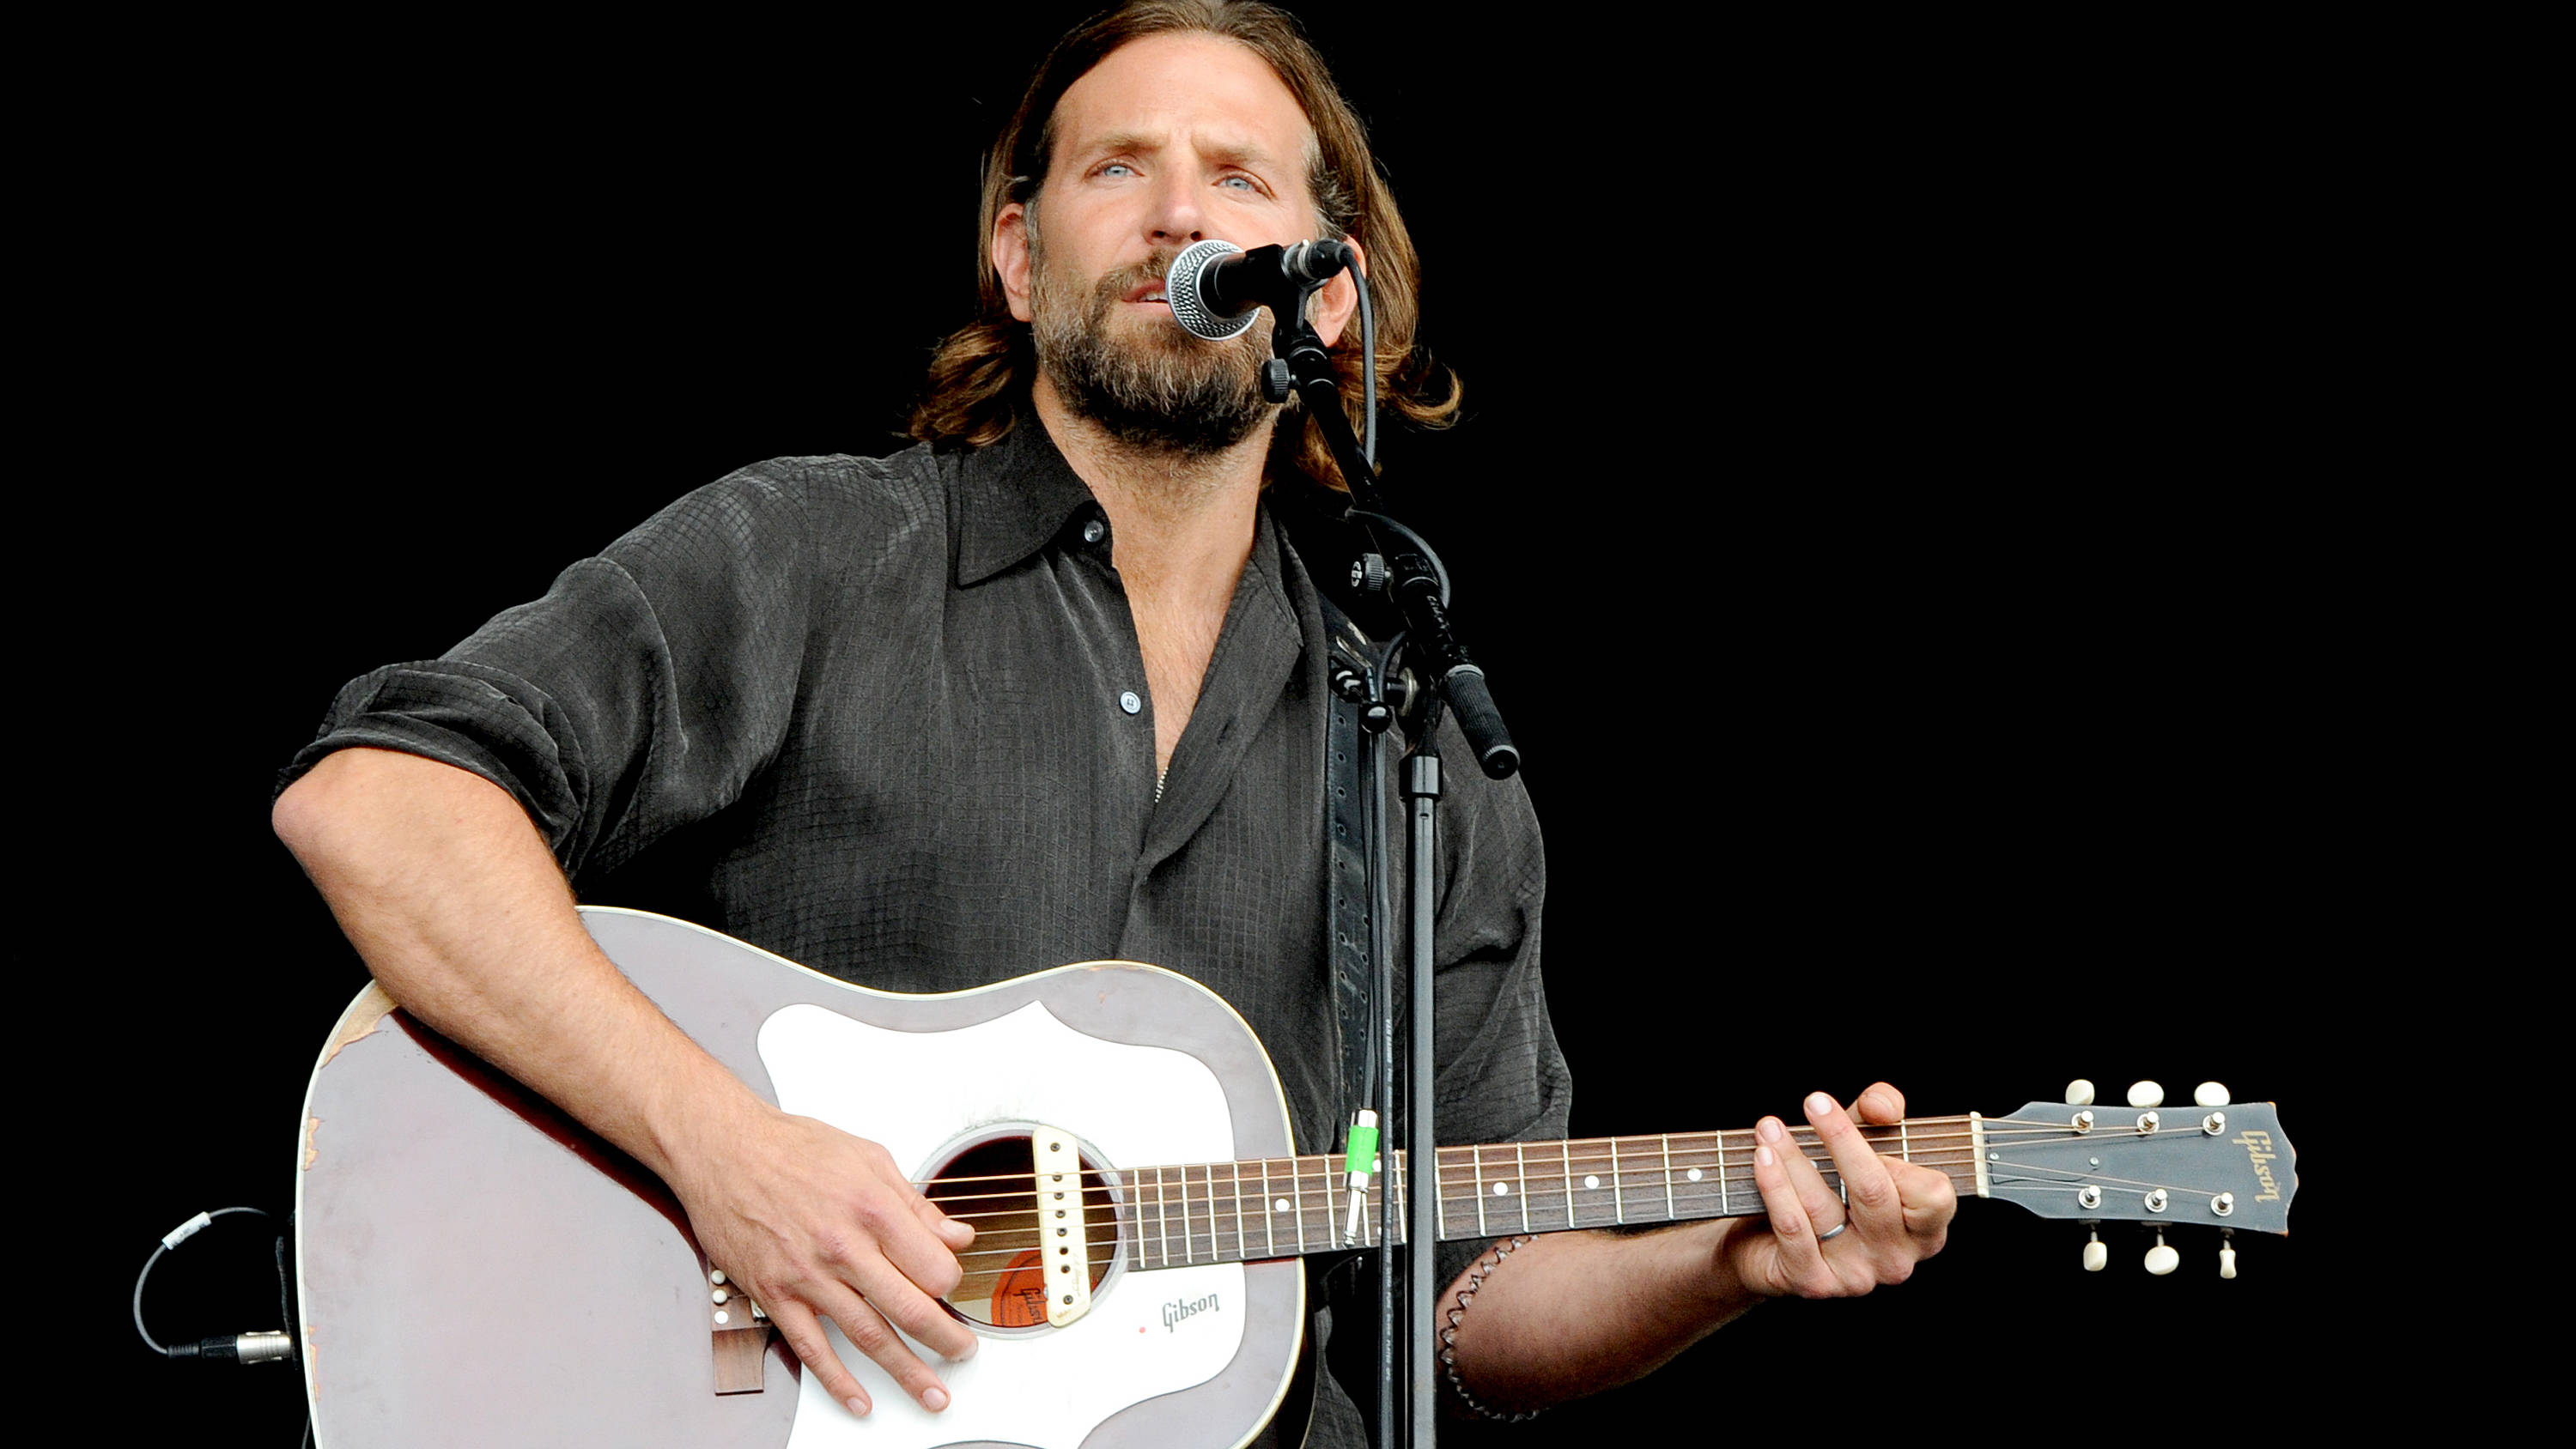 Is Bradley Cooper really playing the guitar in A Star is